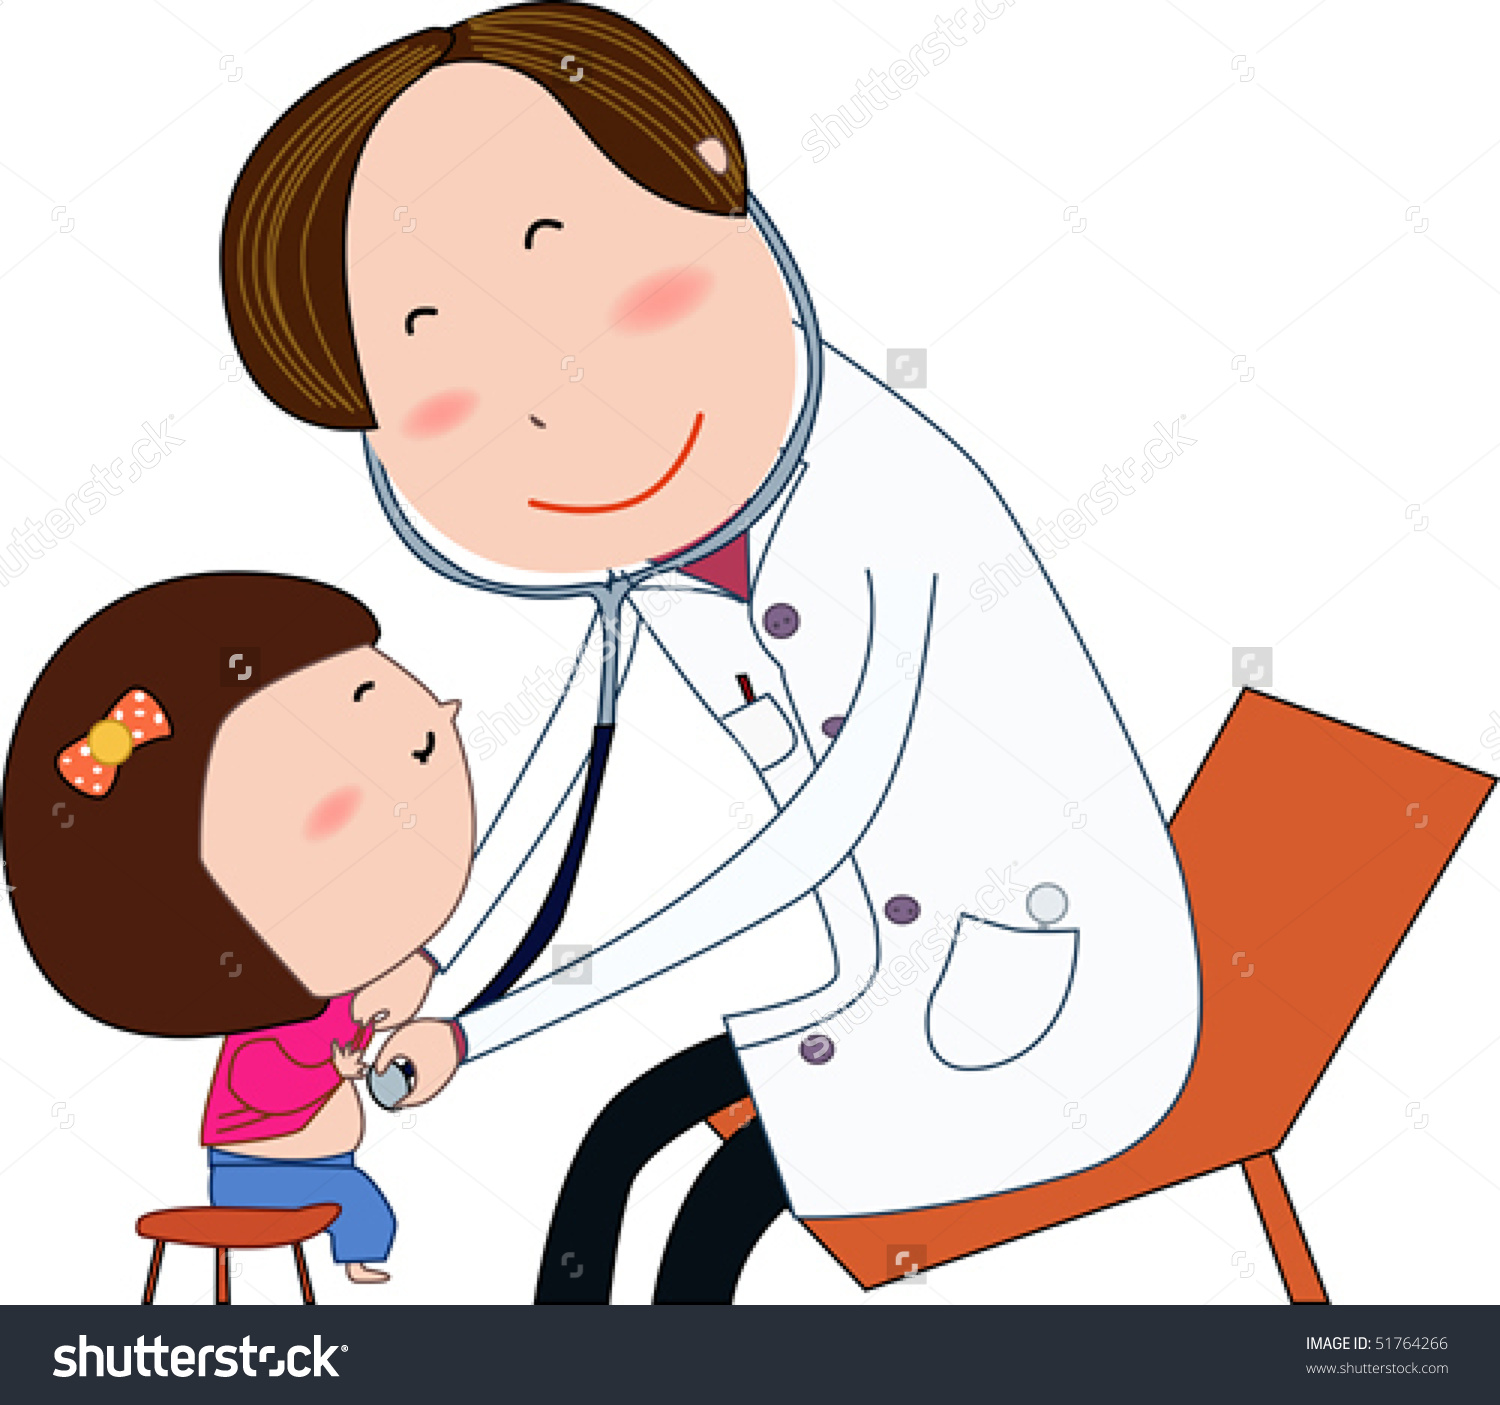 Kids doctor clipart graphic royalty free Doctor Clipart For Kids | Free download best Doctor Clipart For Kids ... graphic royalty free